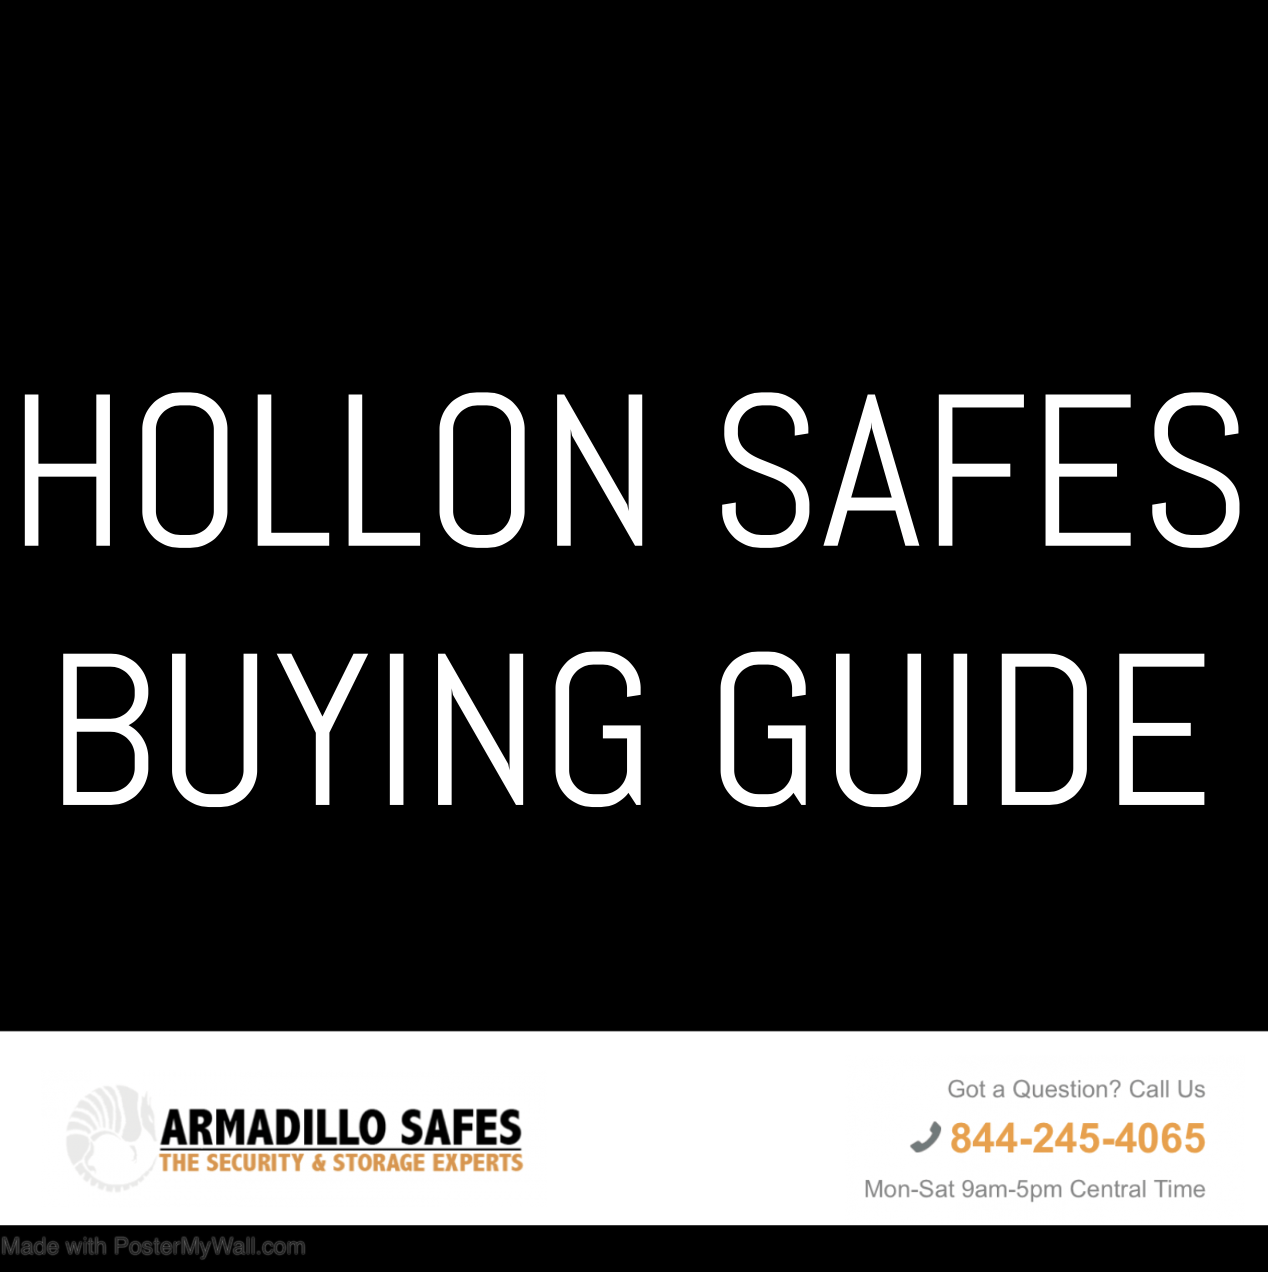 Hollon Safes Buying Guide